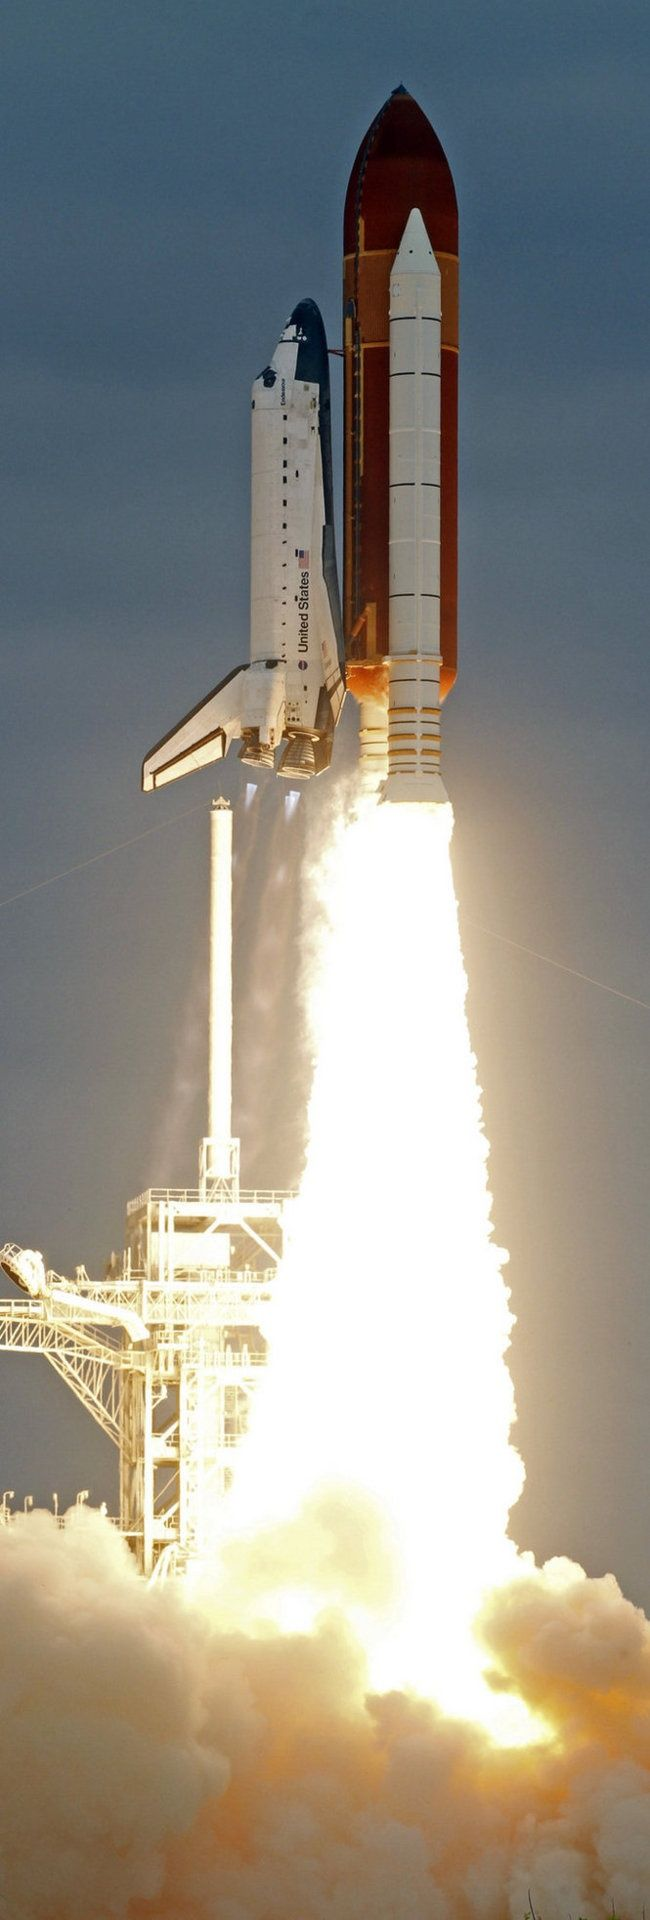 The space shuttle Endeavour lifts off from Kennedy Space Center in Cape Canaveral, Fla., Monday, May 16, 2011. The space shuttle Endeavour began a 14 day mission to the international space station.